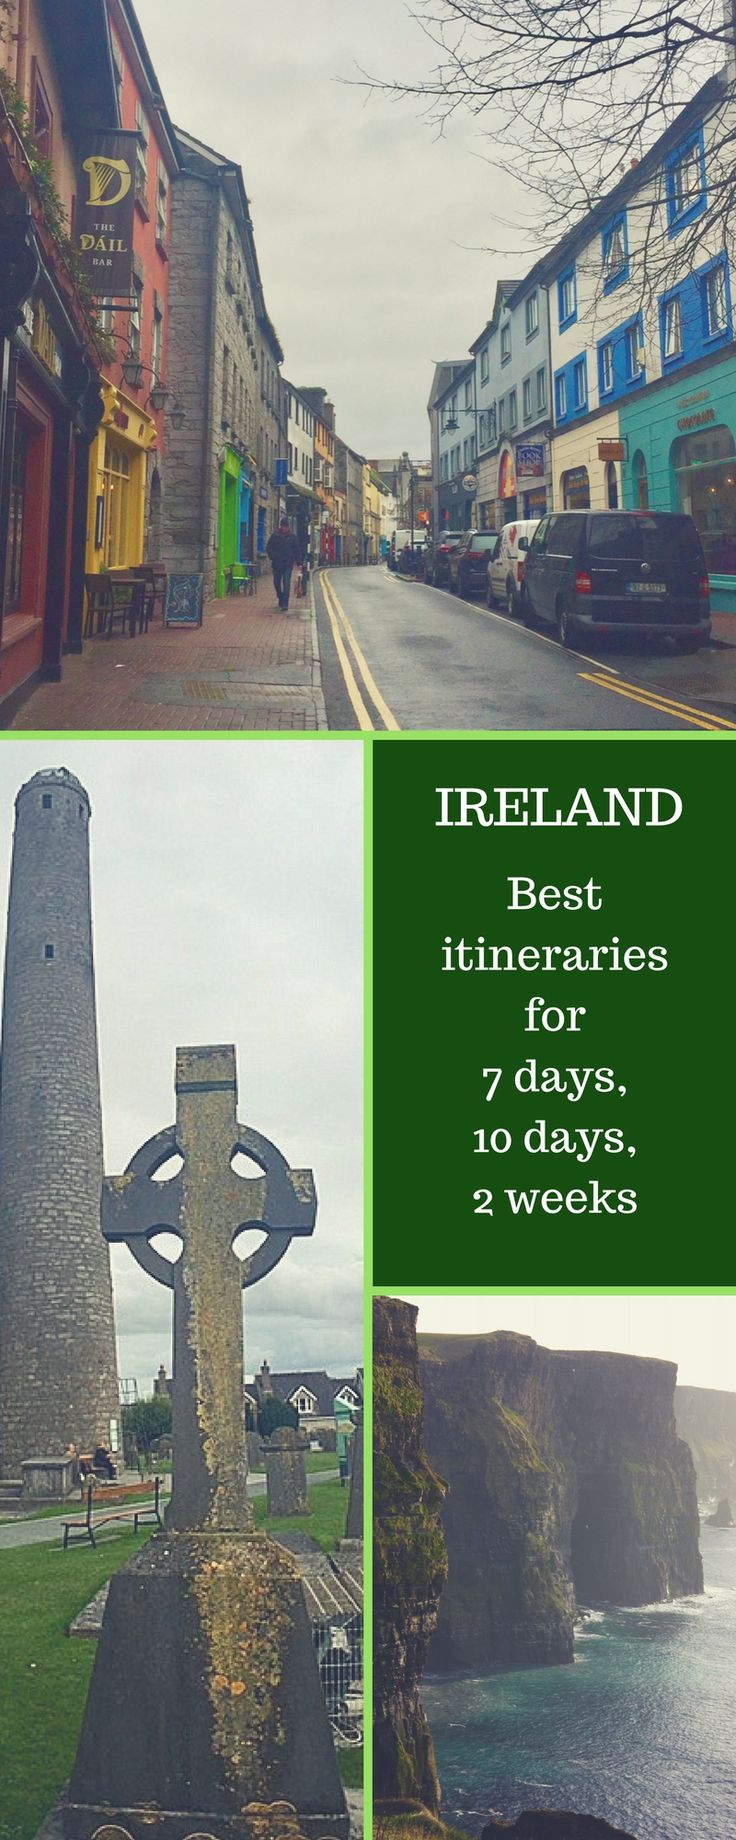 The best Ireland itineraries for 7 days, 10 days or two weeks in Ireland. A handy guide with the best stops for an Ireland road trip and Ireland travel tips for the whole family.